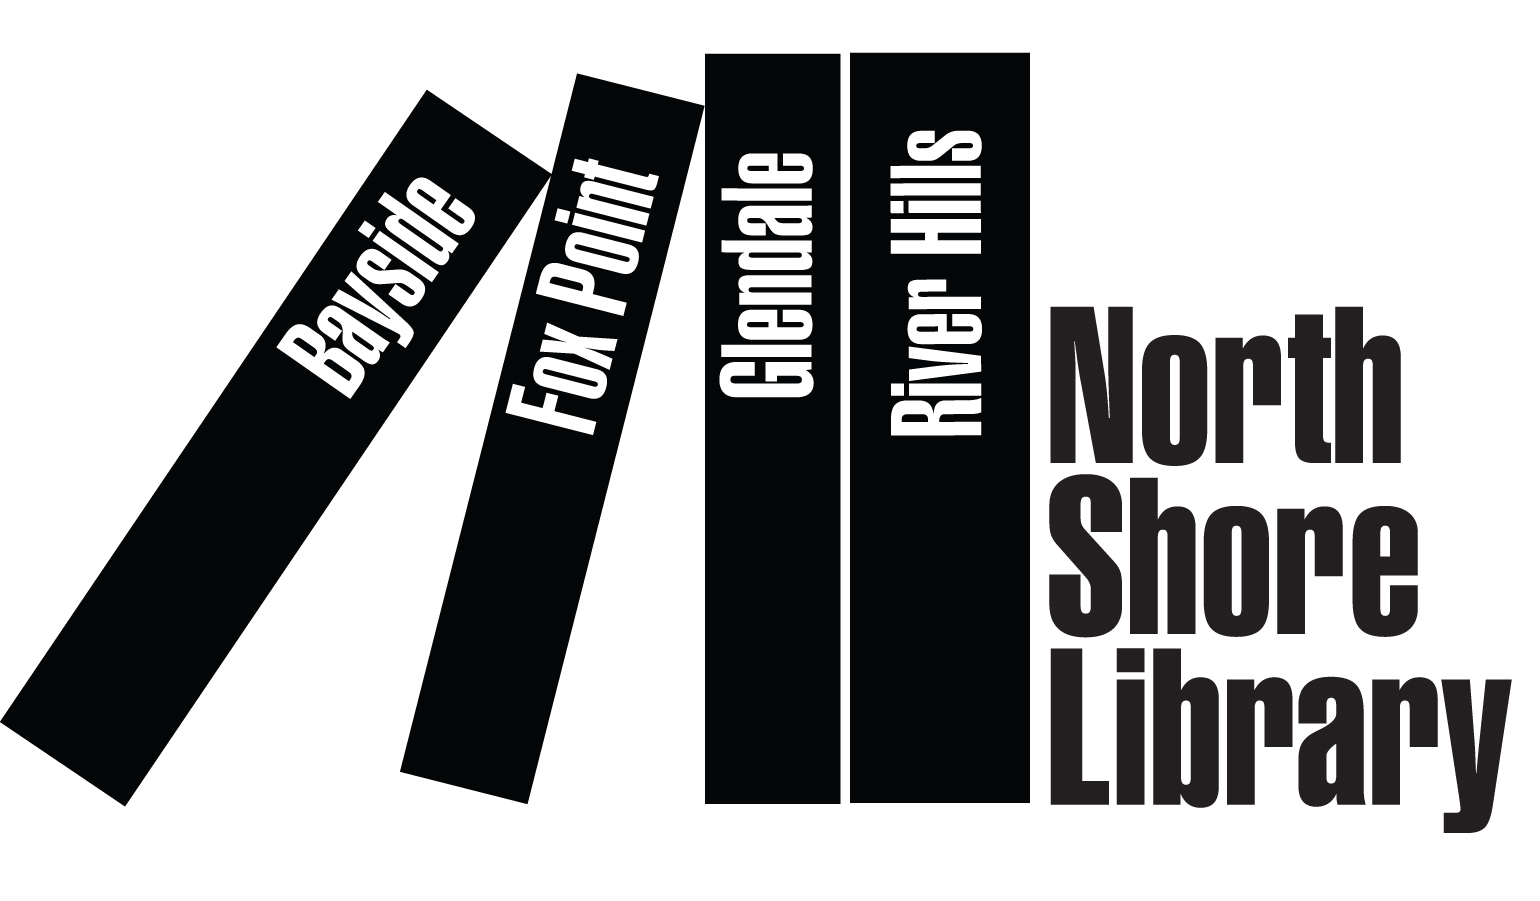 North Shore Library Curbside Pick-Up